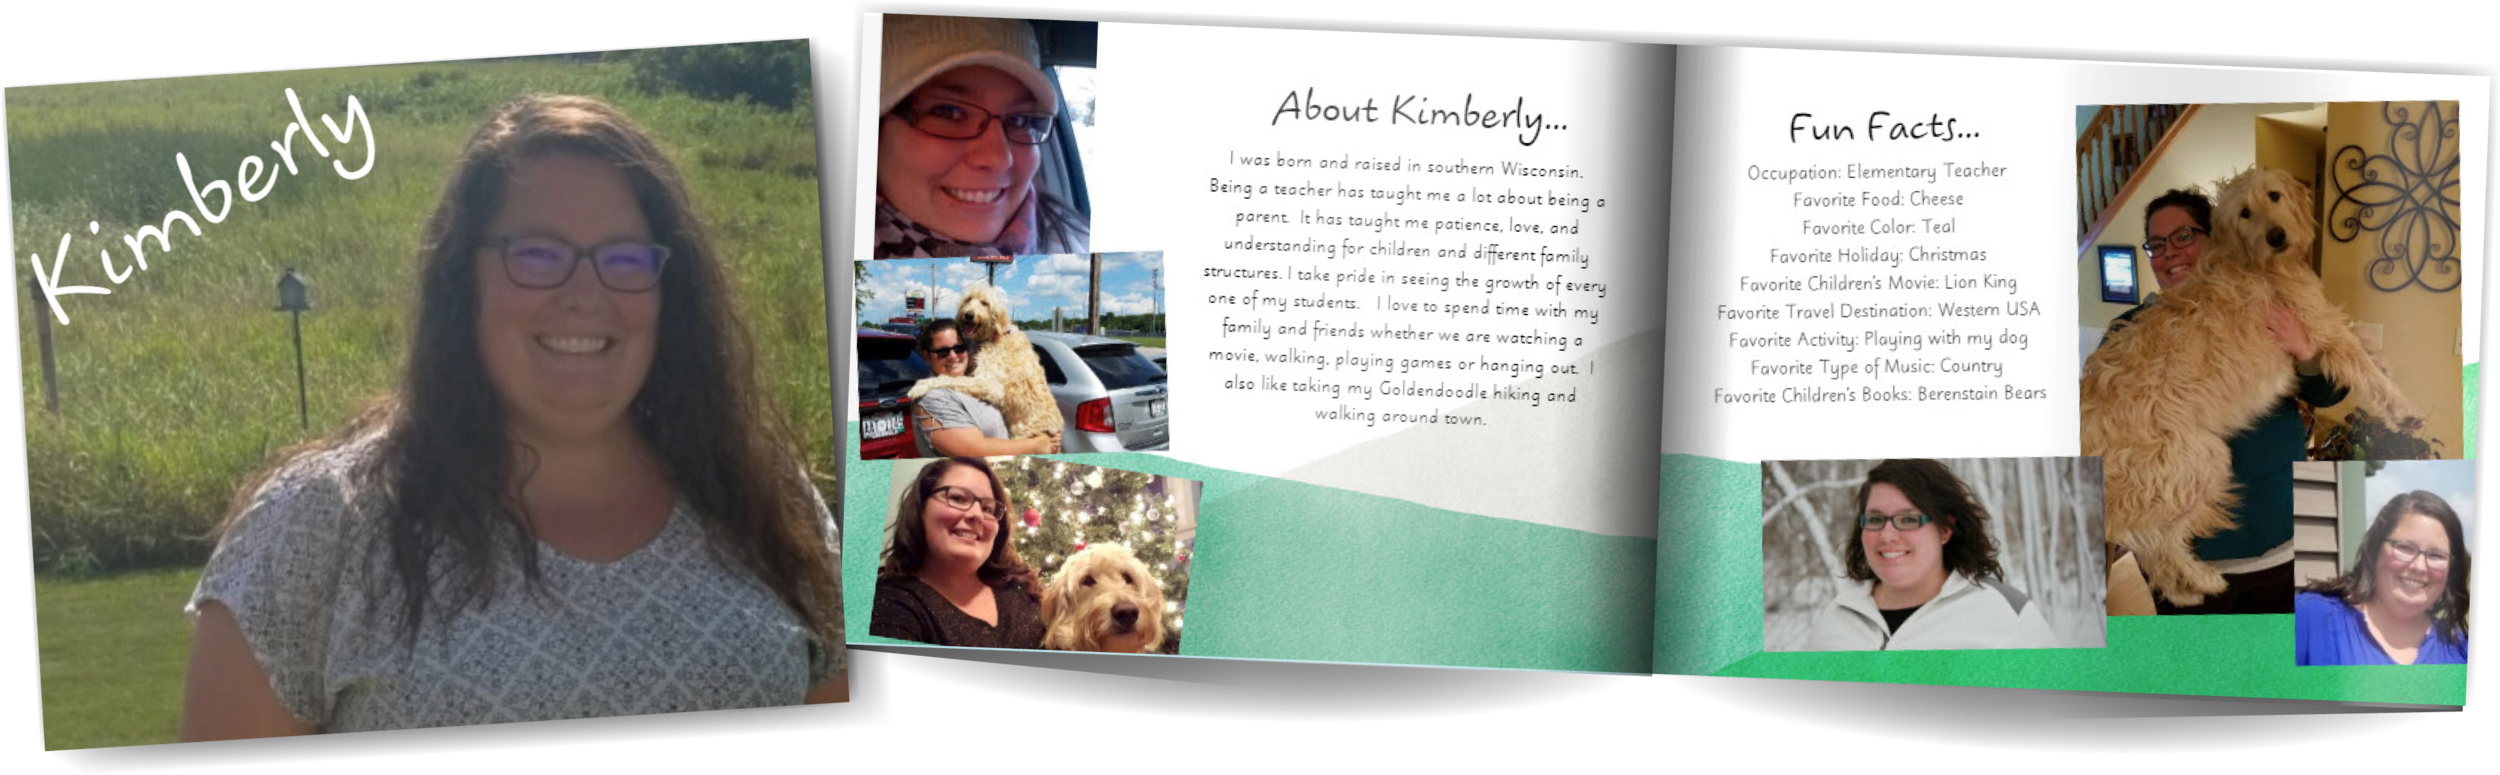 Adoption profile book for Kimberly